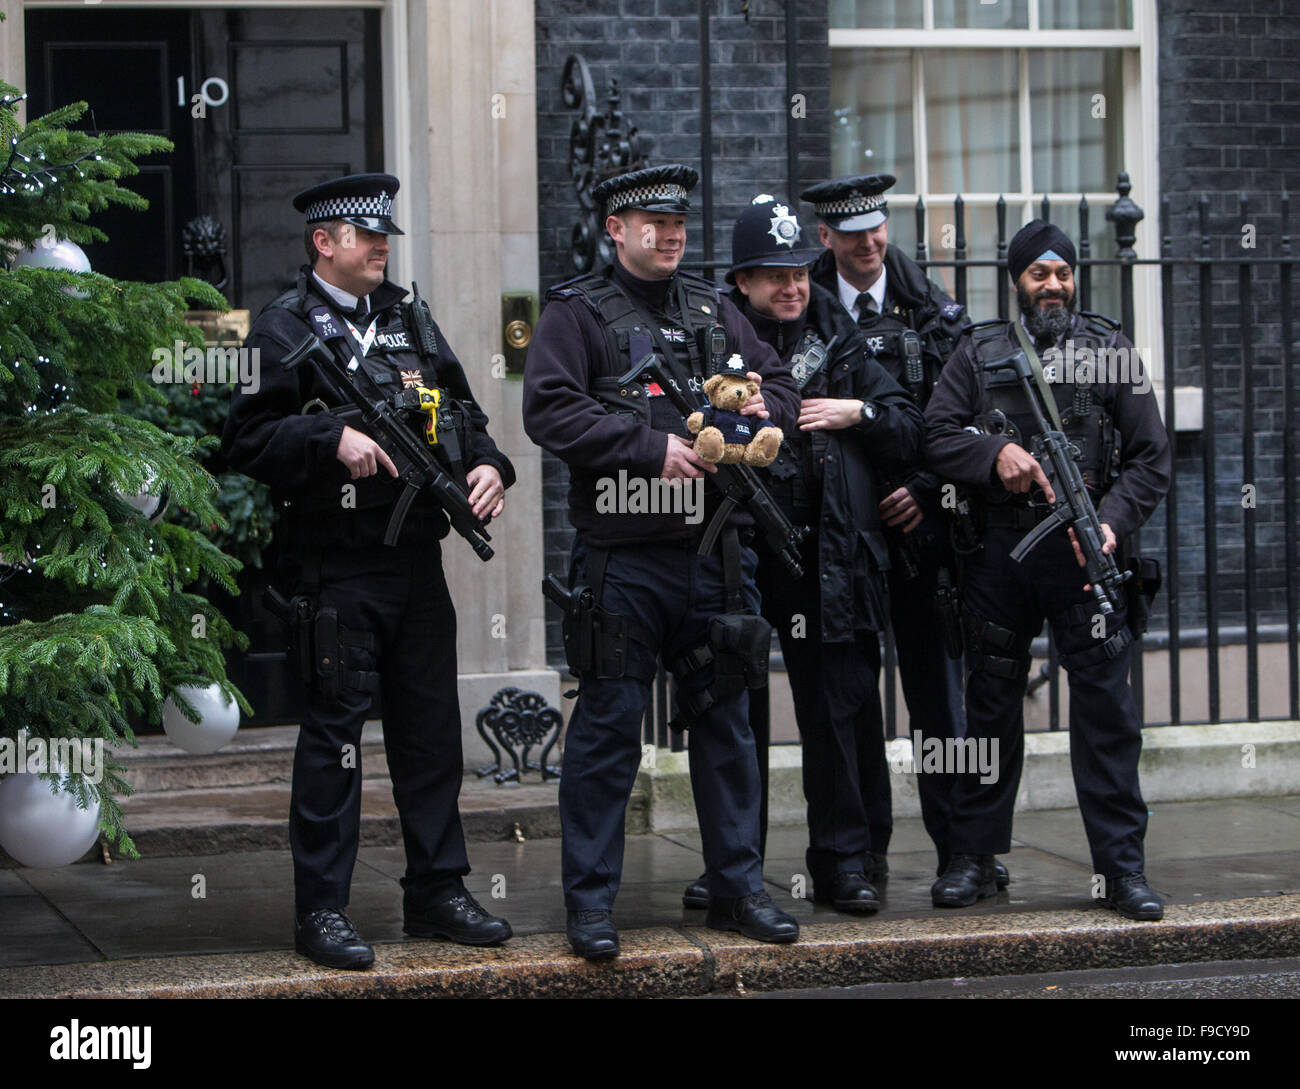 Security Police At Number 10 Downing Street Posing In